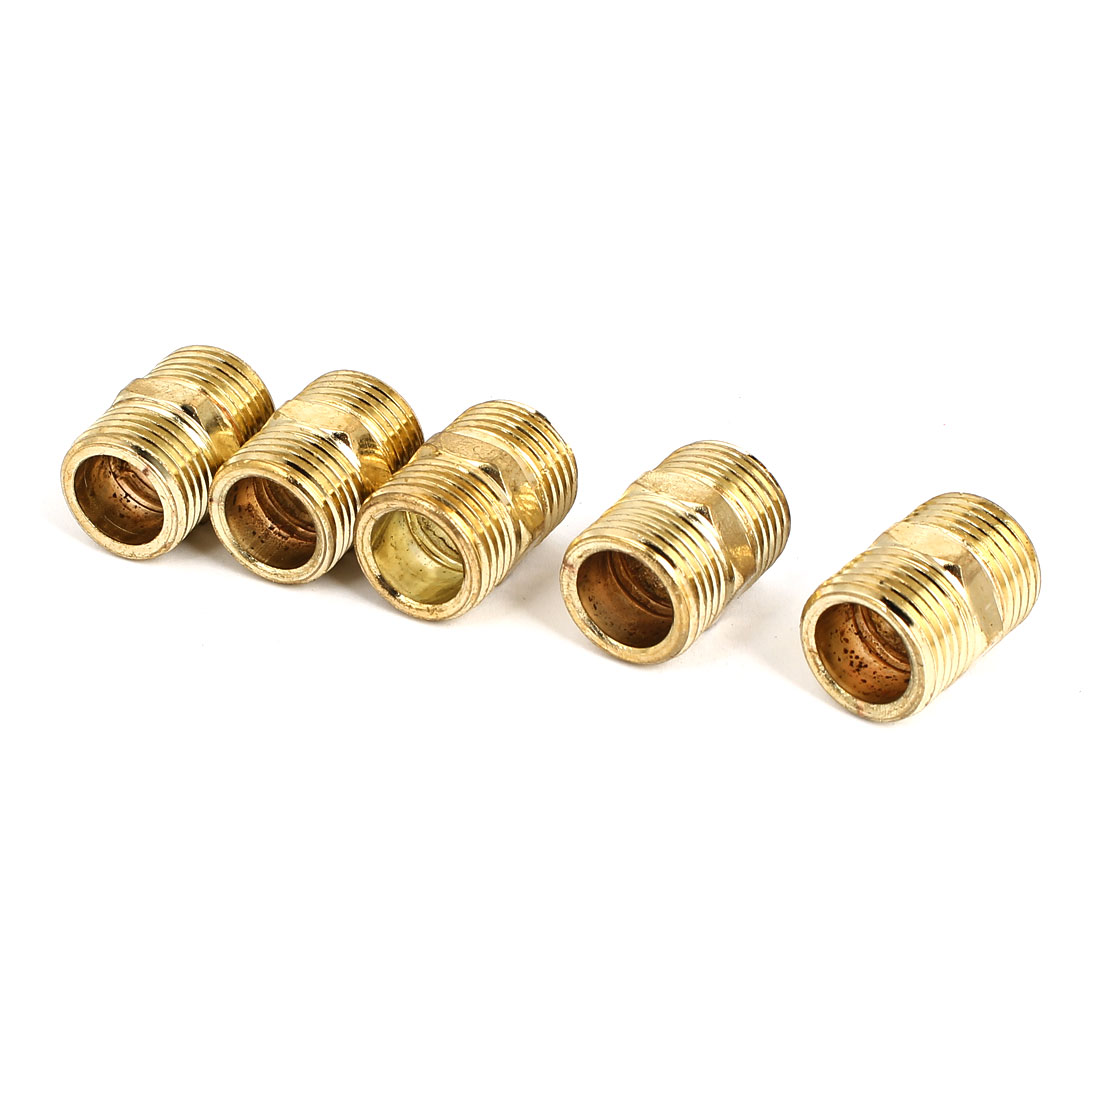 1/2BSP to 1/2BSP Male Thread Air Water Pipe Fitting Hex Nipple Gold Tone 5Pcs